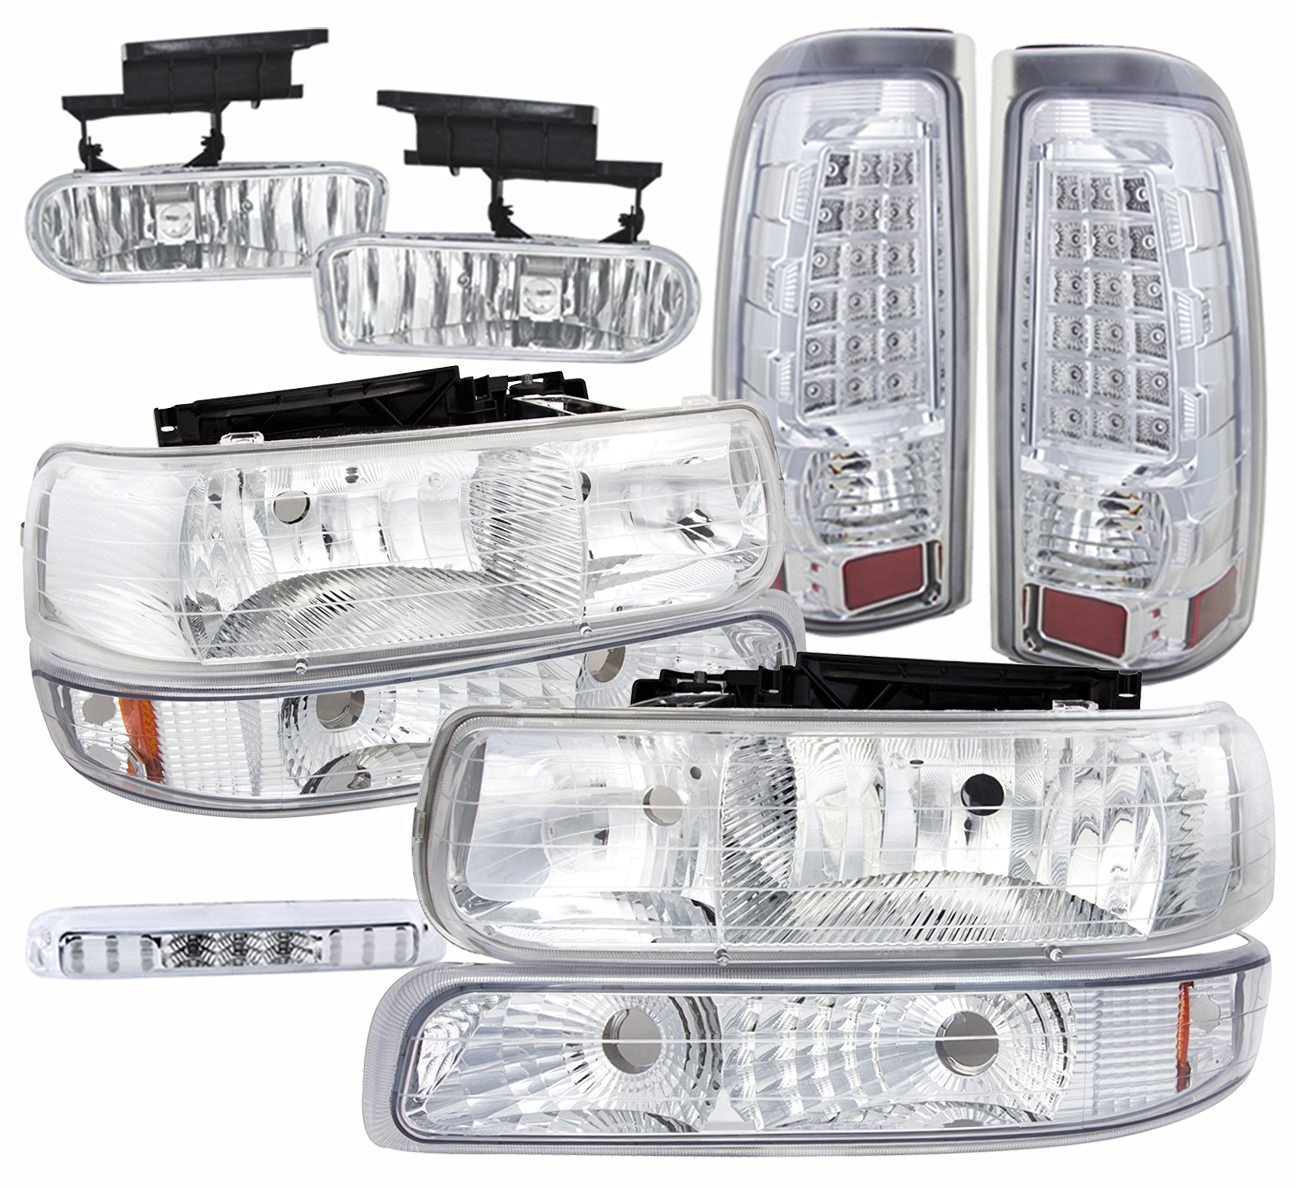 Chevy Silverado 1500 2500 3500 Chrome Headlight Amber Reflector 3Rd Third Brake Stop Tail Fog Lamp Assembly Kit Unit